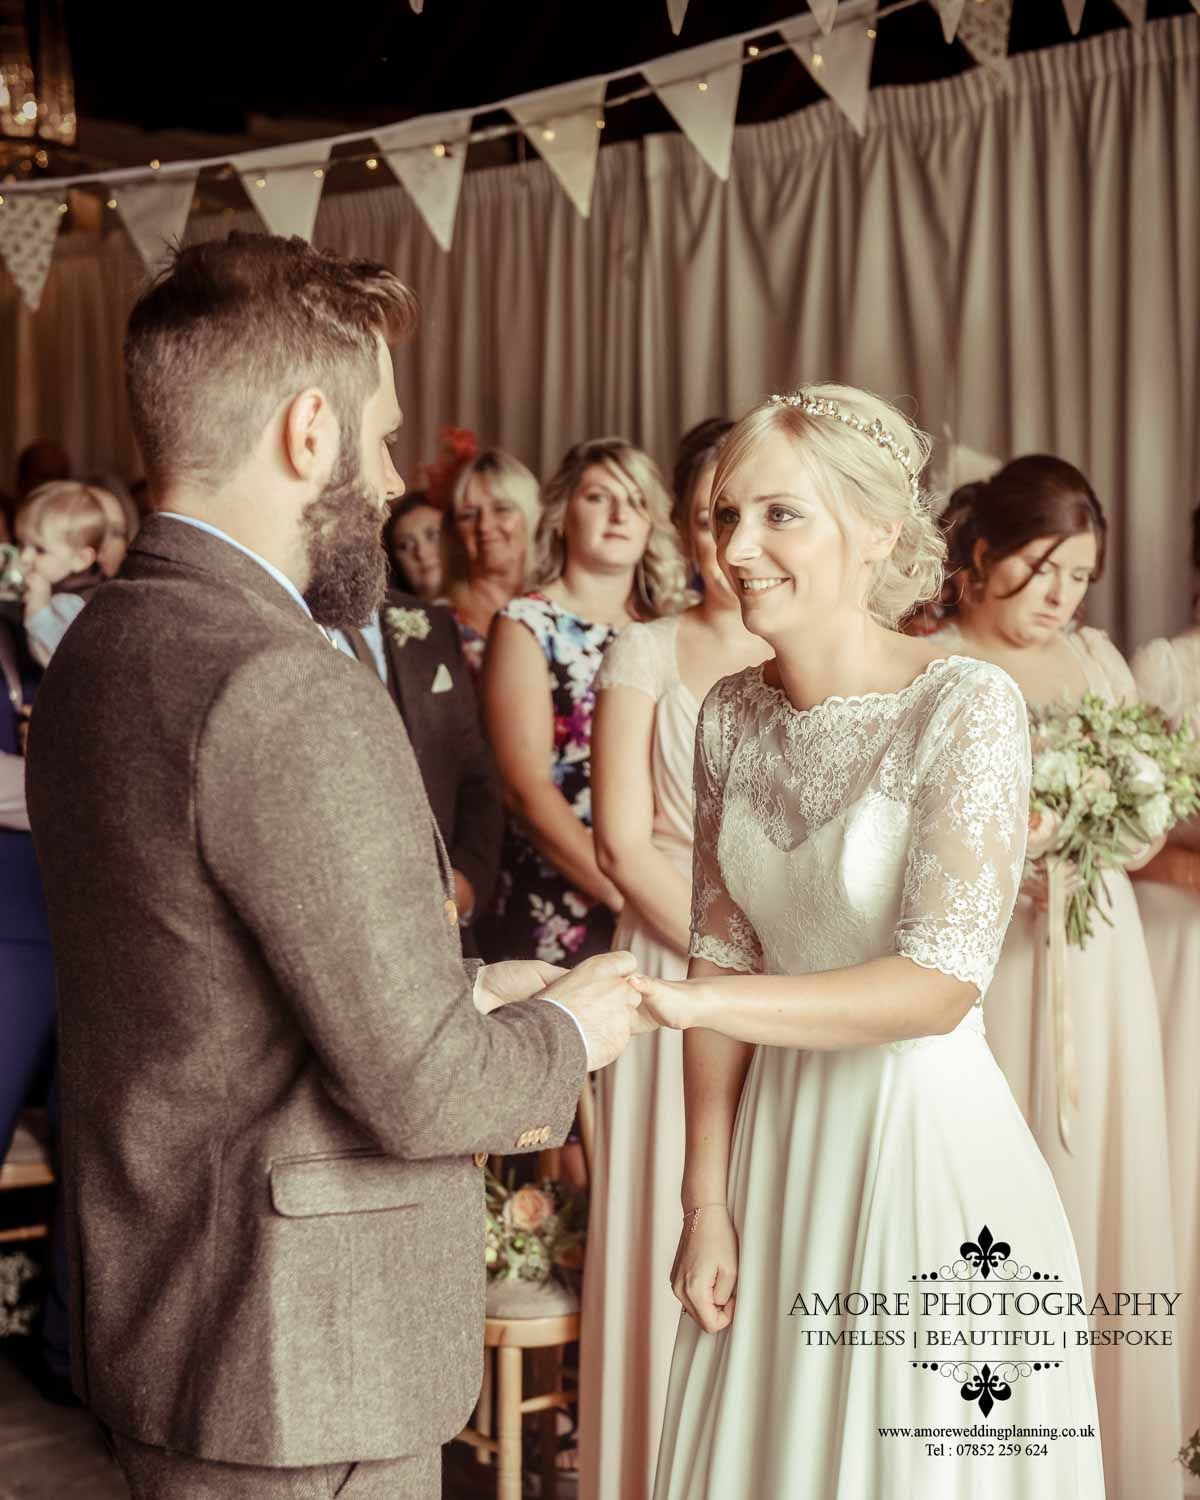 Vintage Wedding Photographer Wakefield North Yorkshire Leeds Wedding Photography Vintage Rustic Barn Weddings (56)